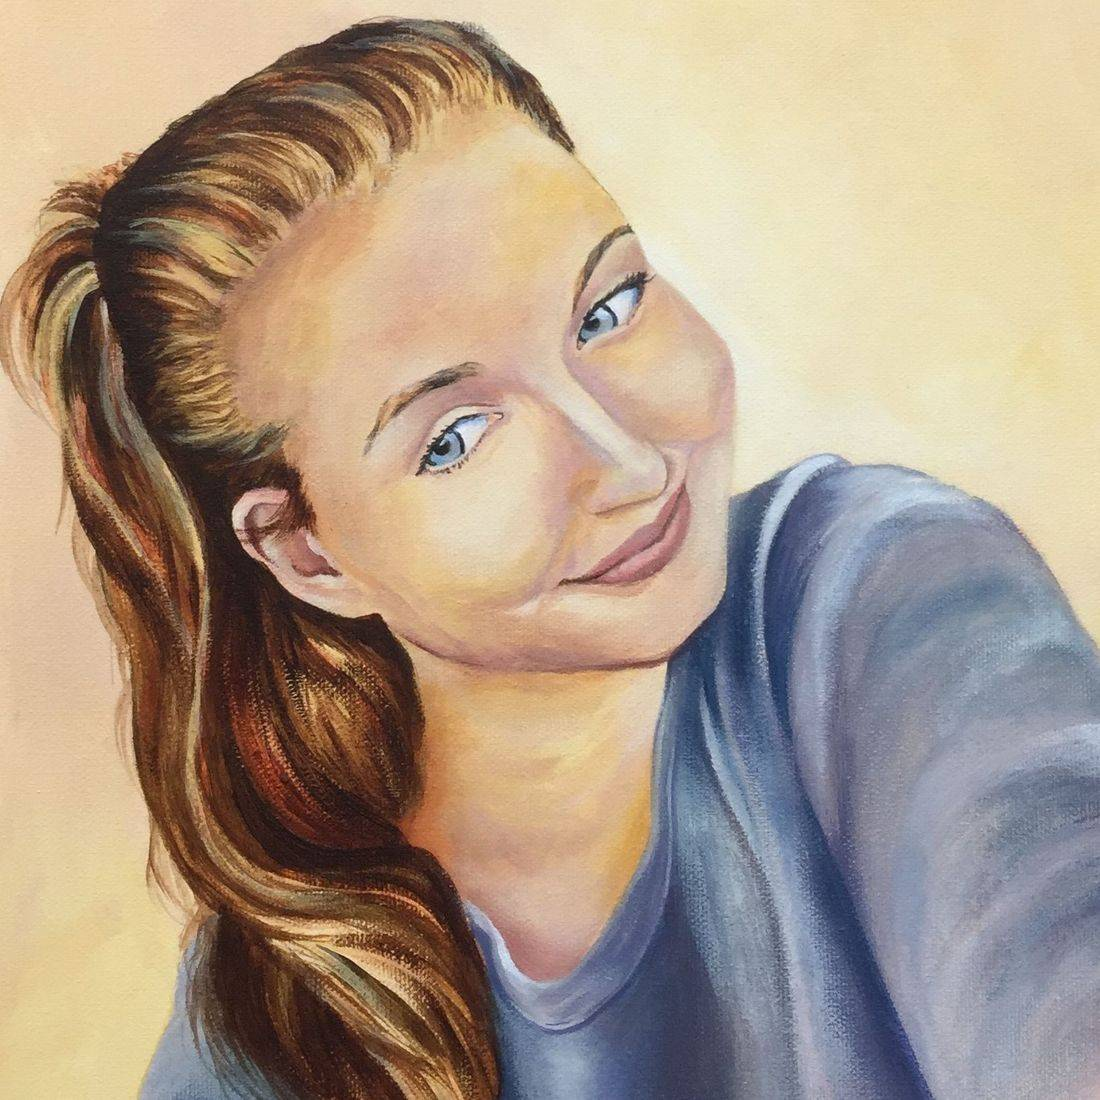 acrylic portrait commission by sandra louisa